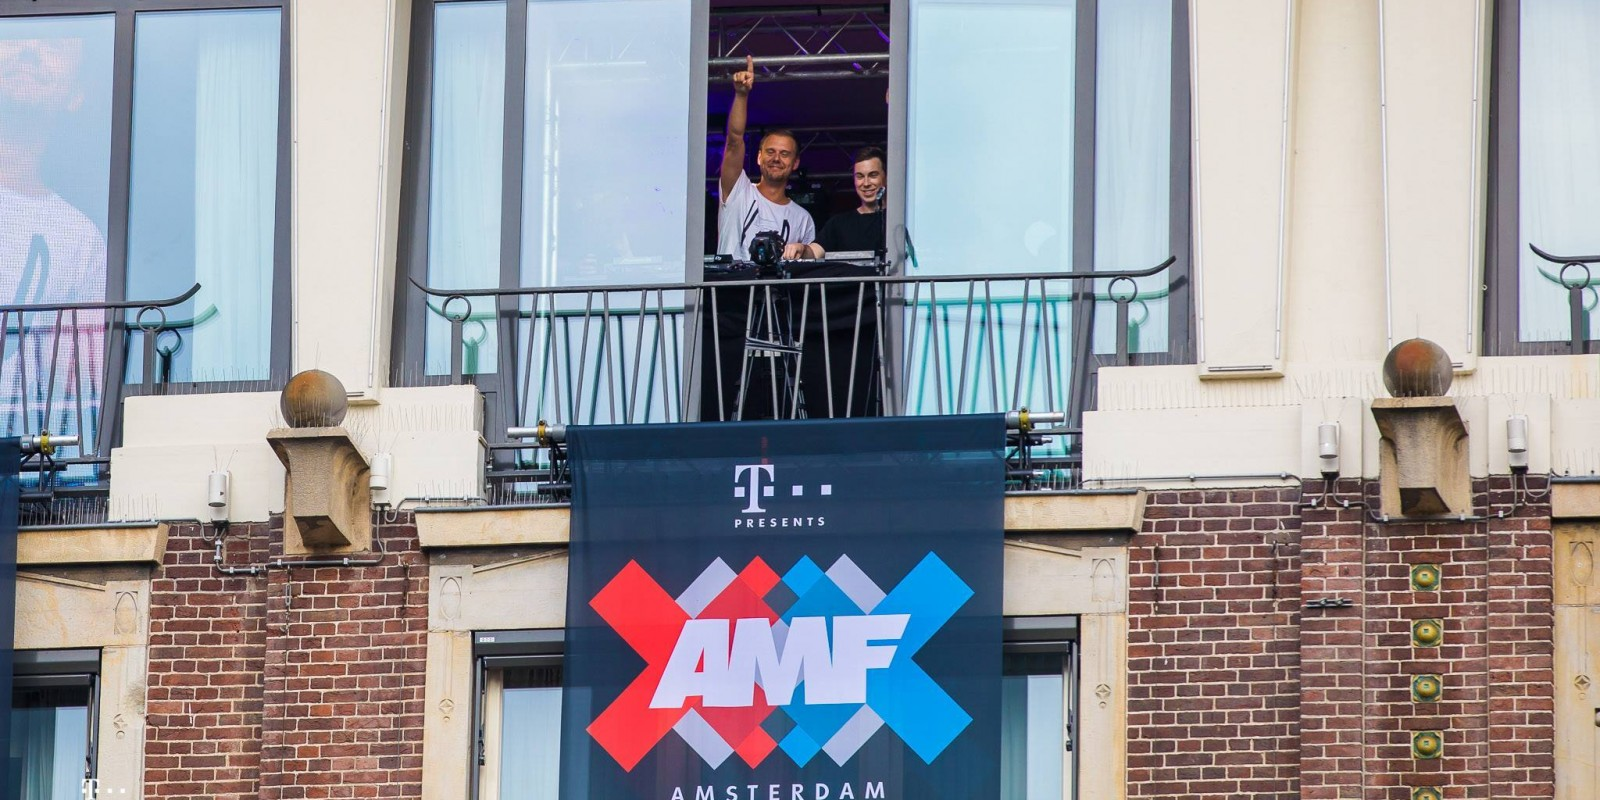 Armin van Buuren and Hardwell II=I Two Is One announcement on Dam Square Amsterdam de Dam